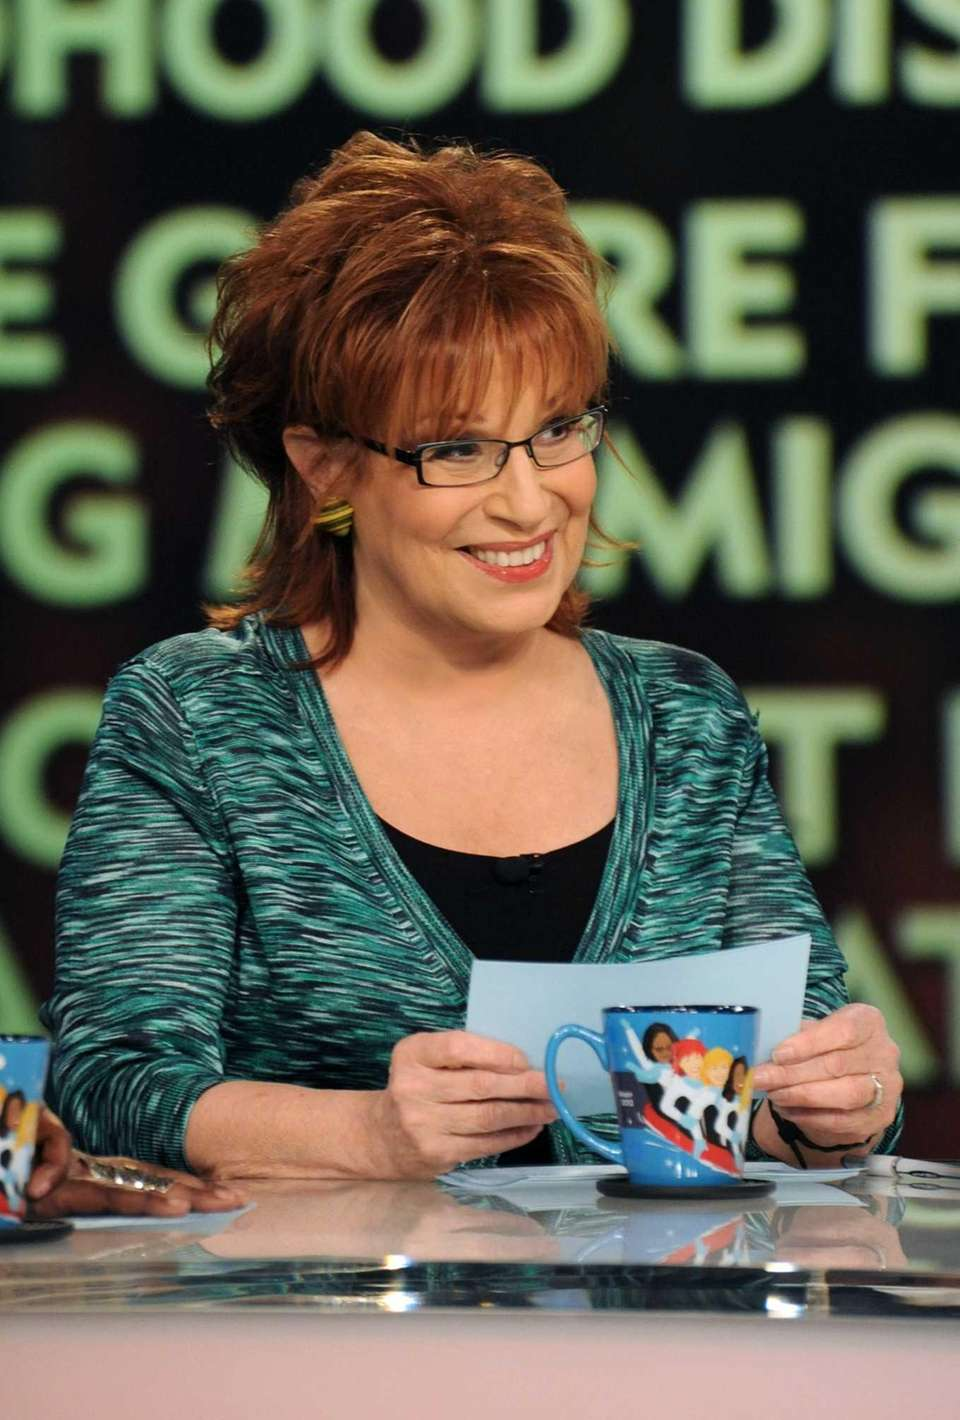 Comedian Joy Behar, an original